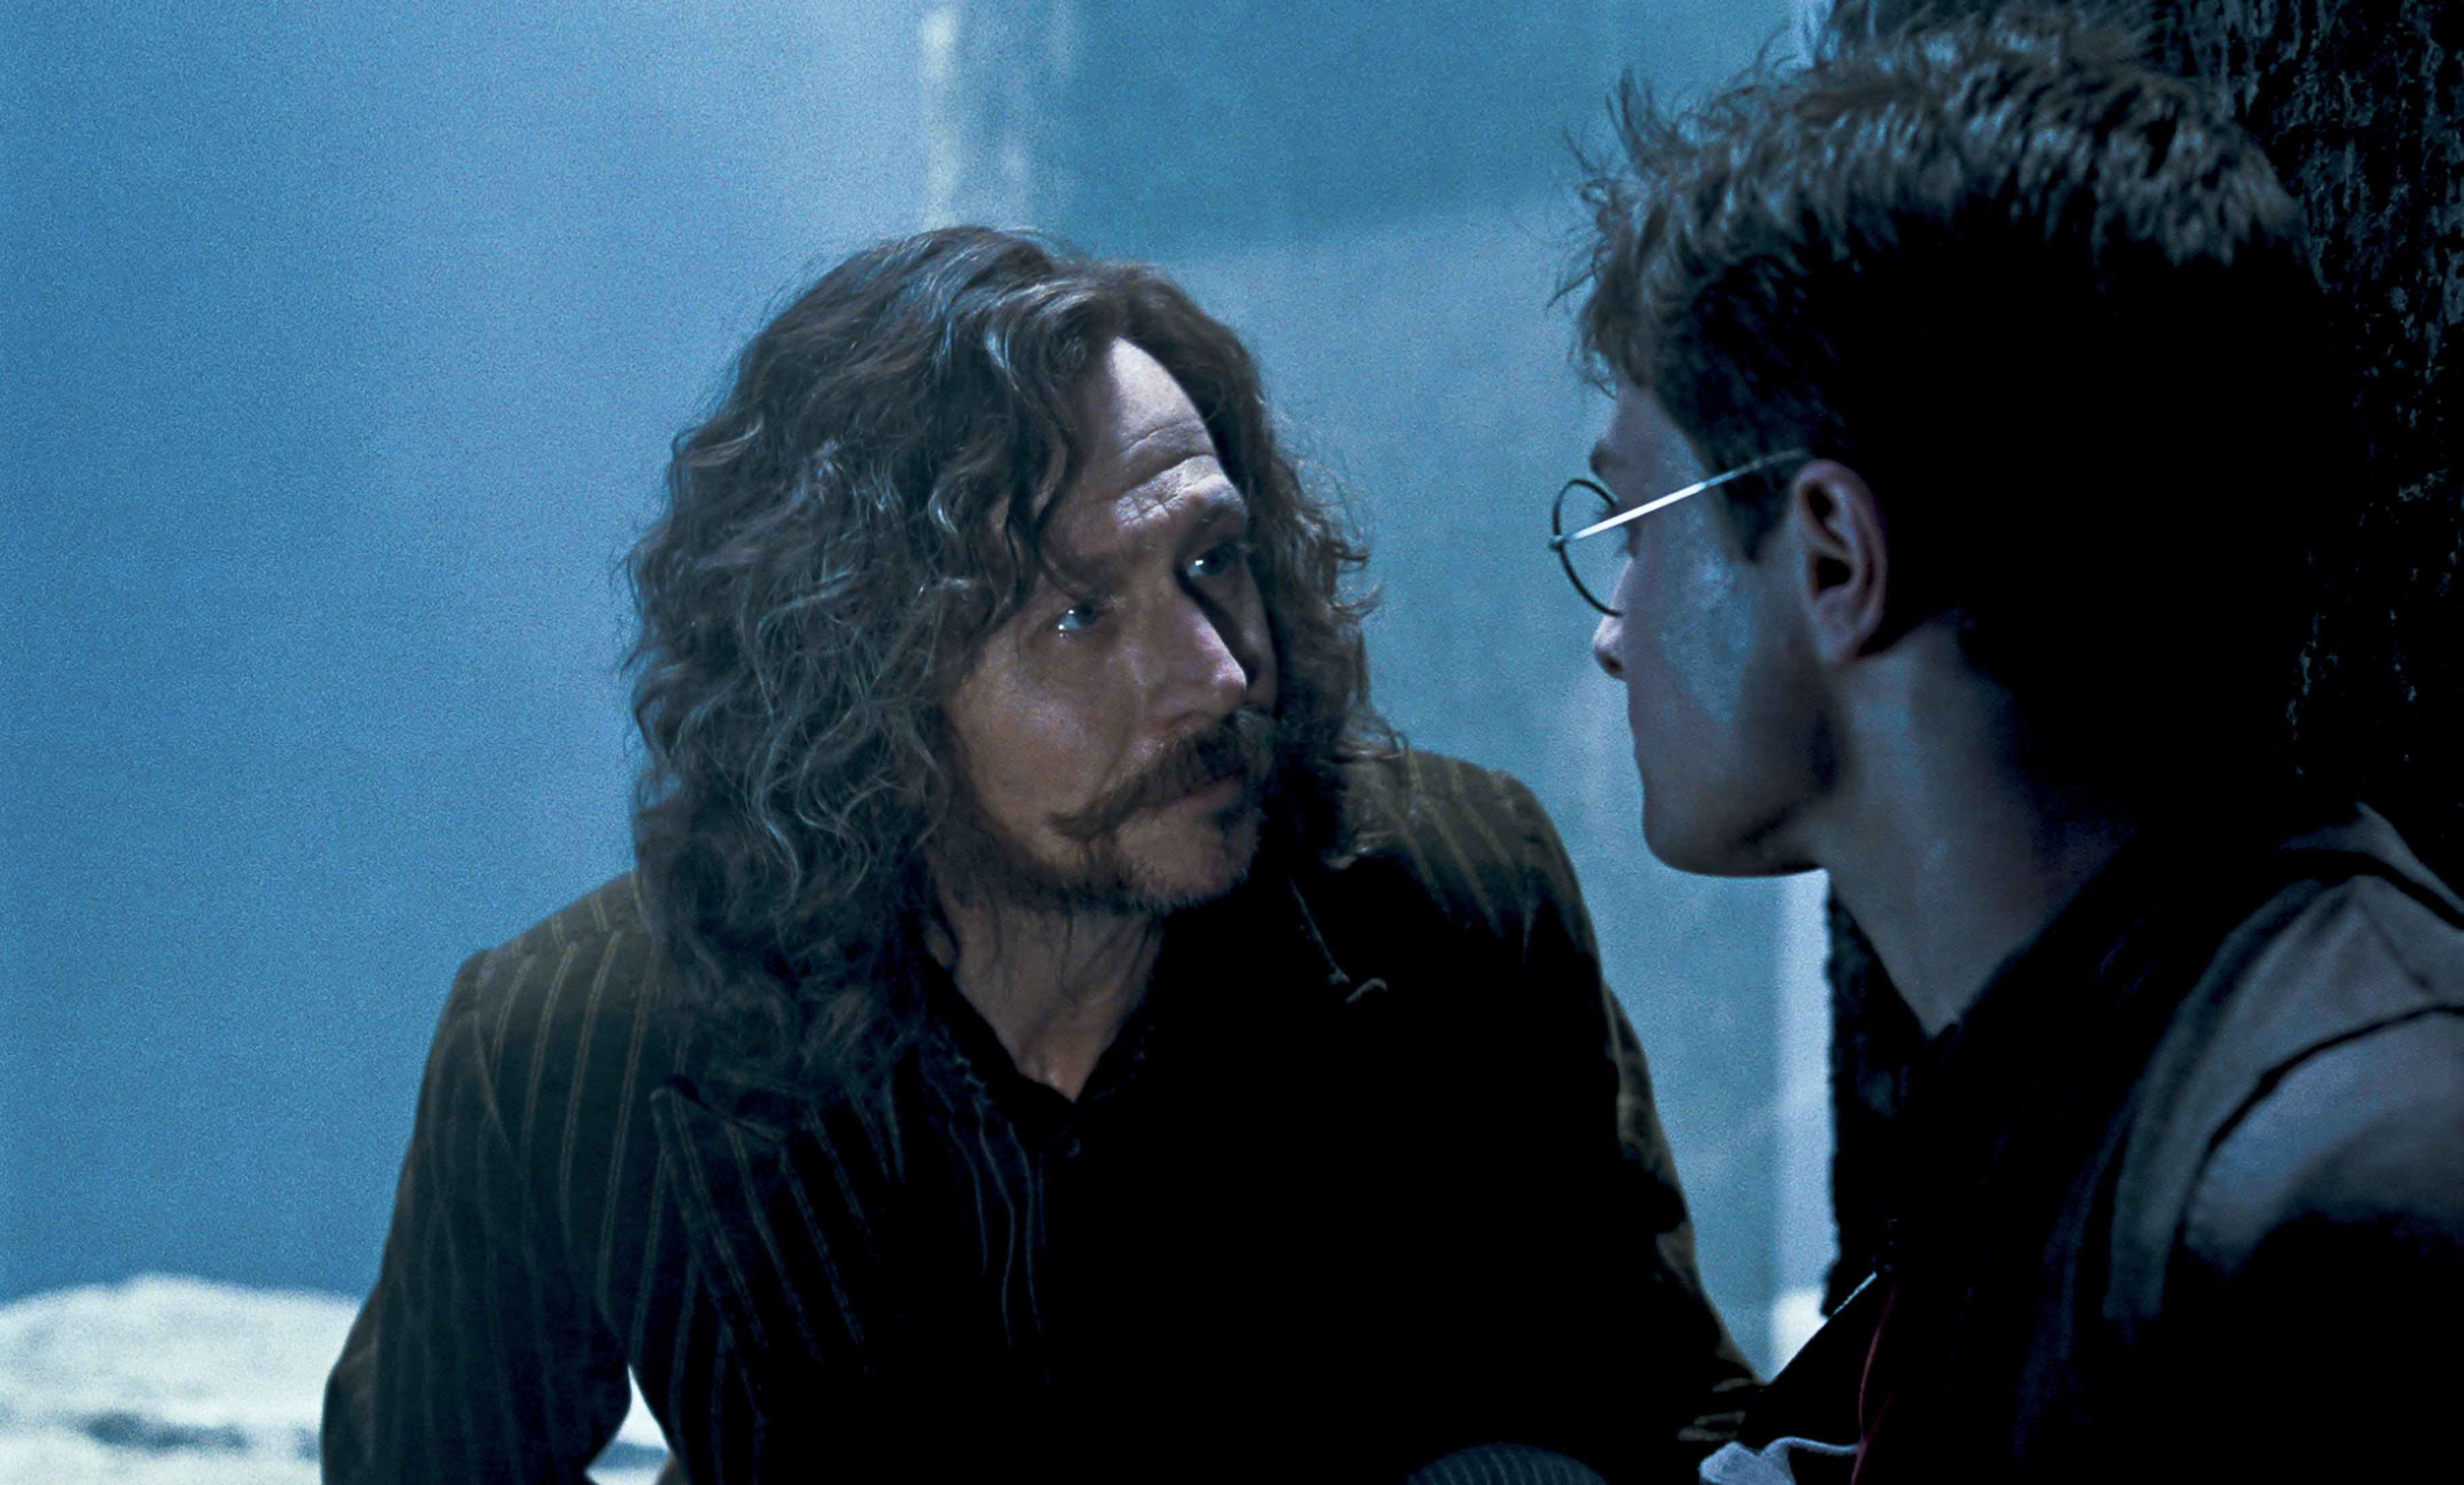 Things You May Not Have Noticed About Sirius Black Wizarding World